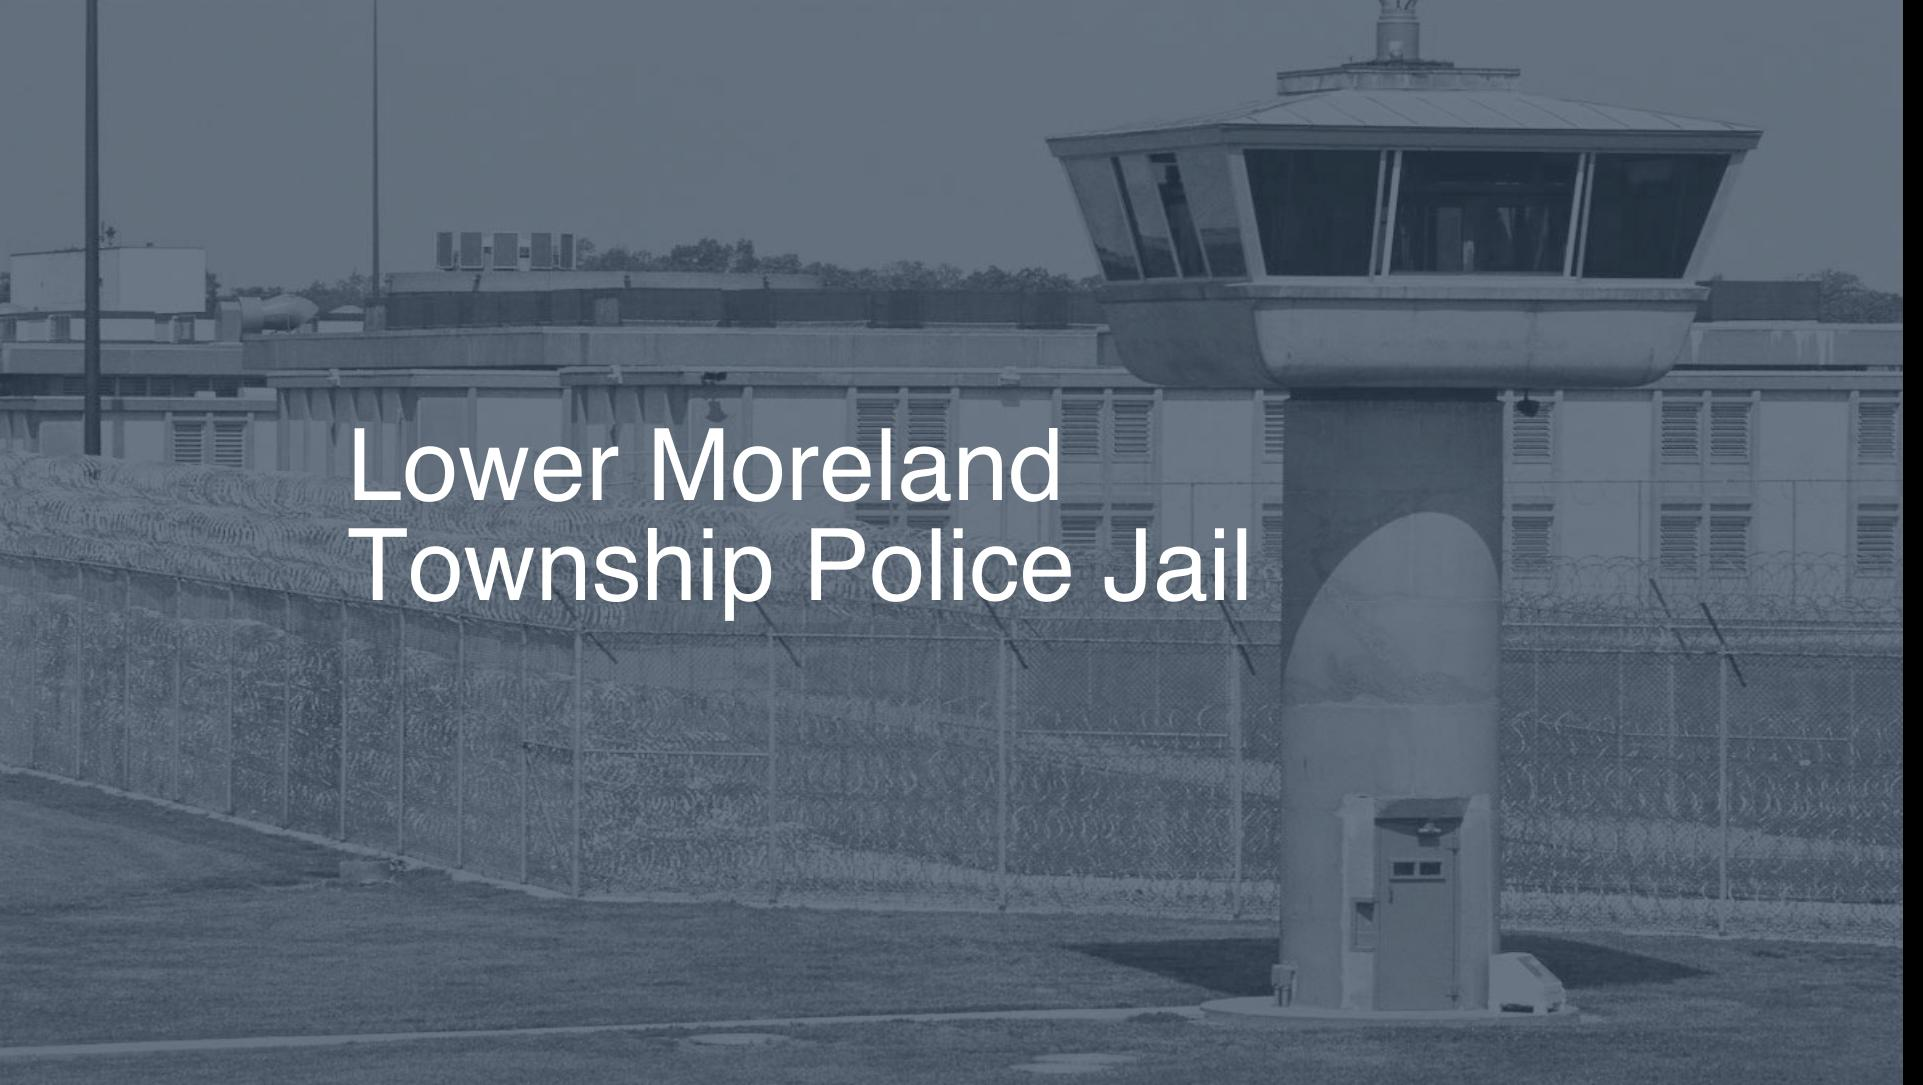 Lower Moreland Township Police Jail correctional facility picture